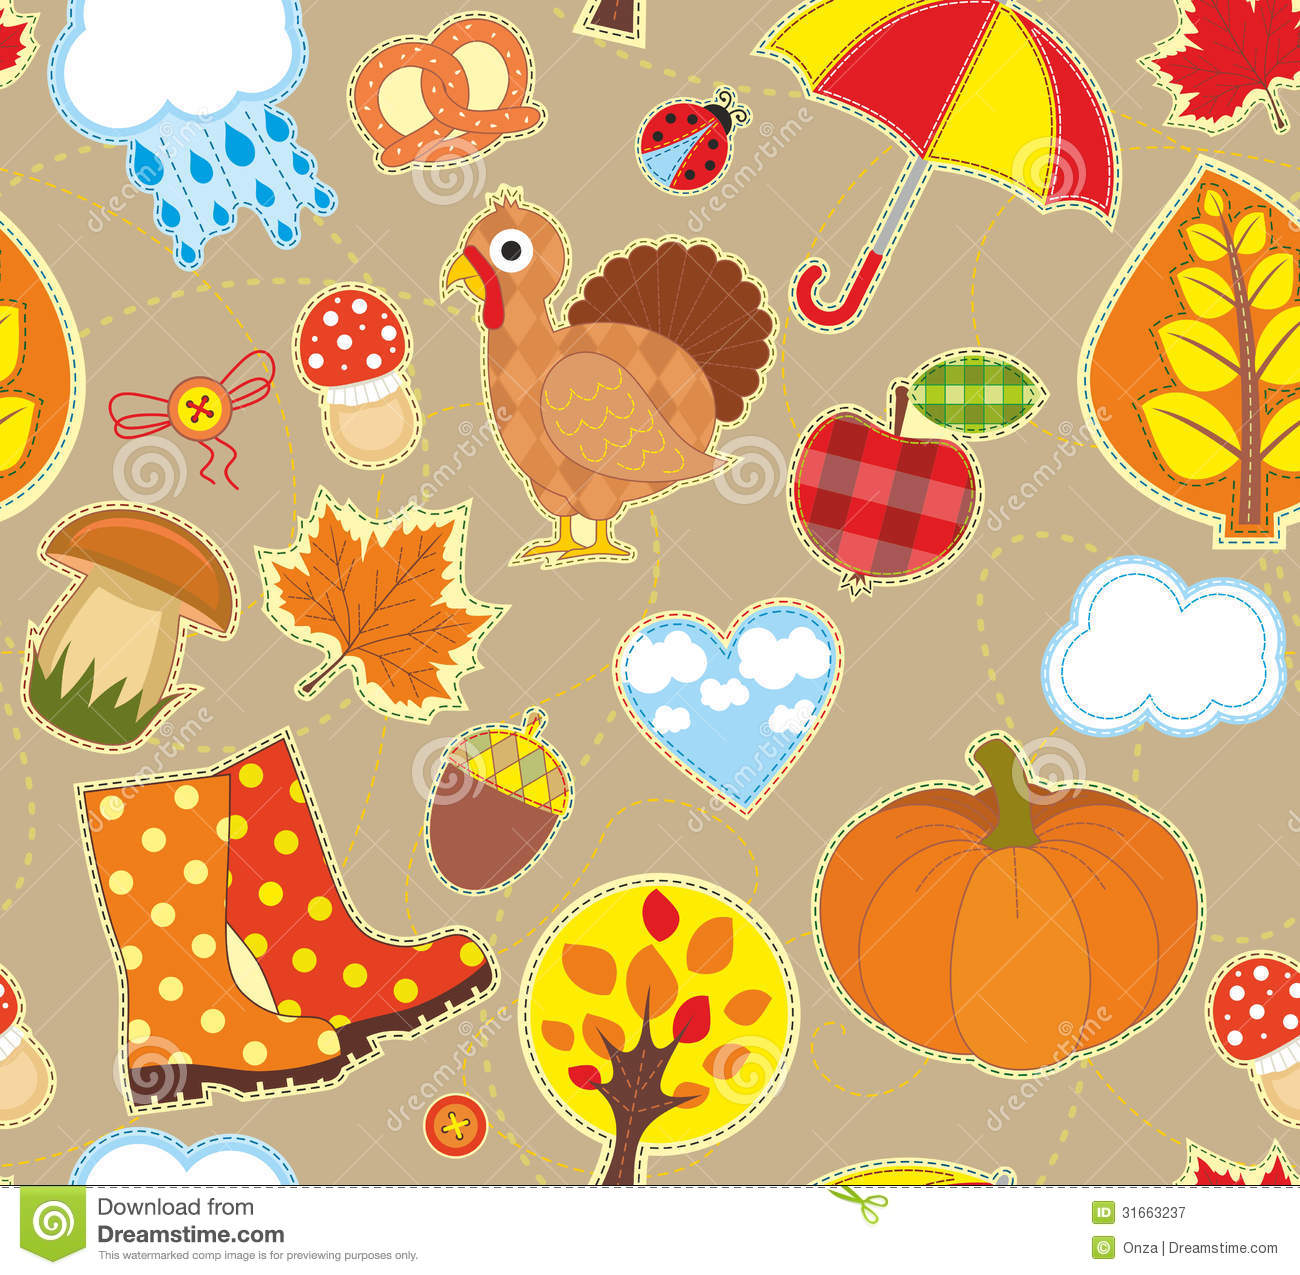 Fall Pumpkin Patch Wallpaper Autumn Seamless Background Royalty Free Stock Photography